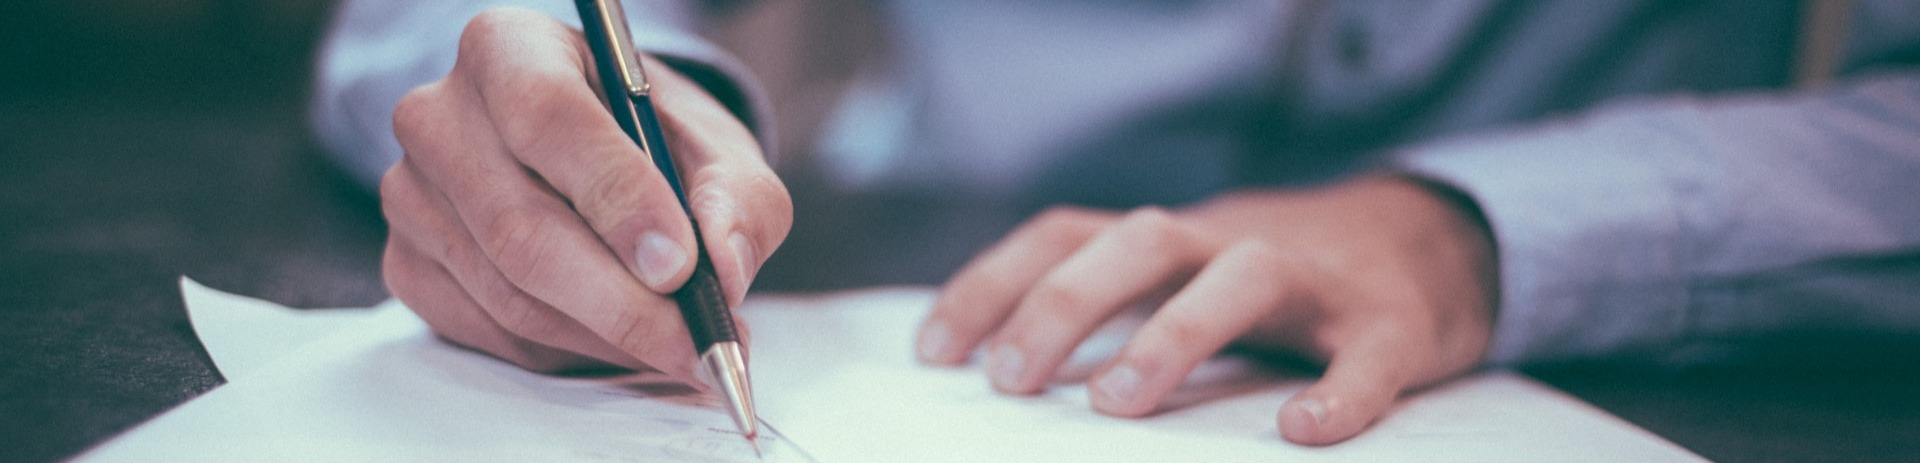 A business man using a ballpoint pent to write on paper